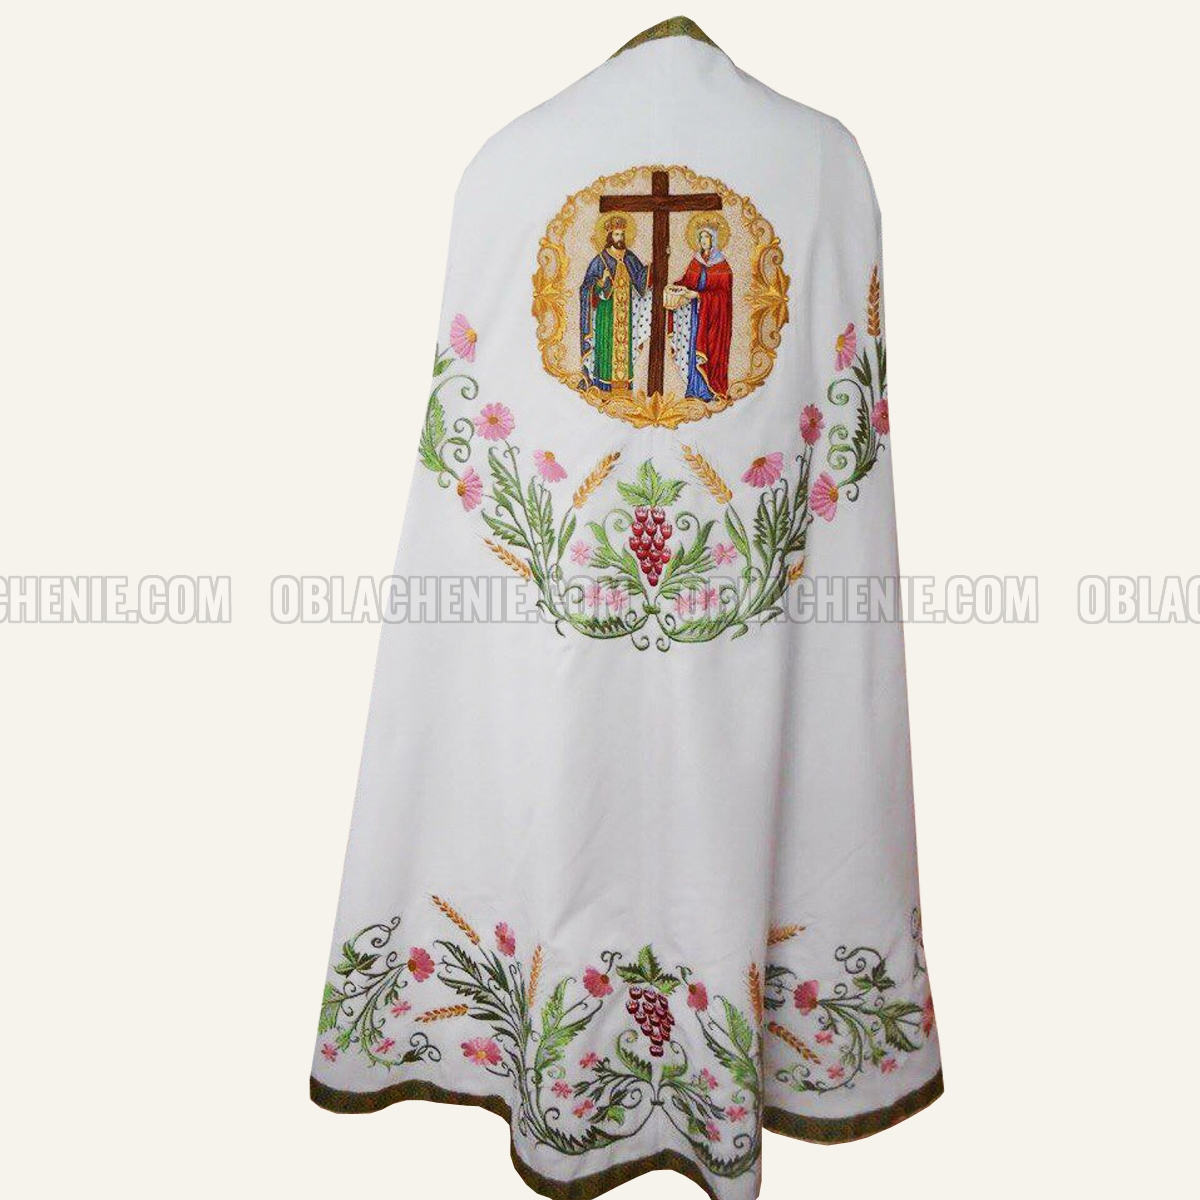 Embroidered priest's vestments 10236